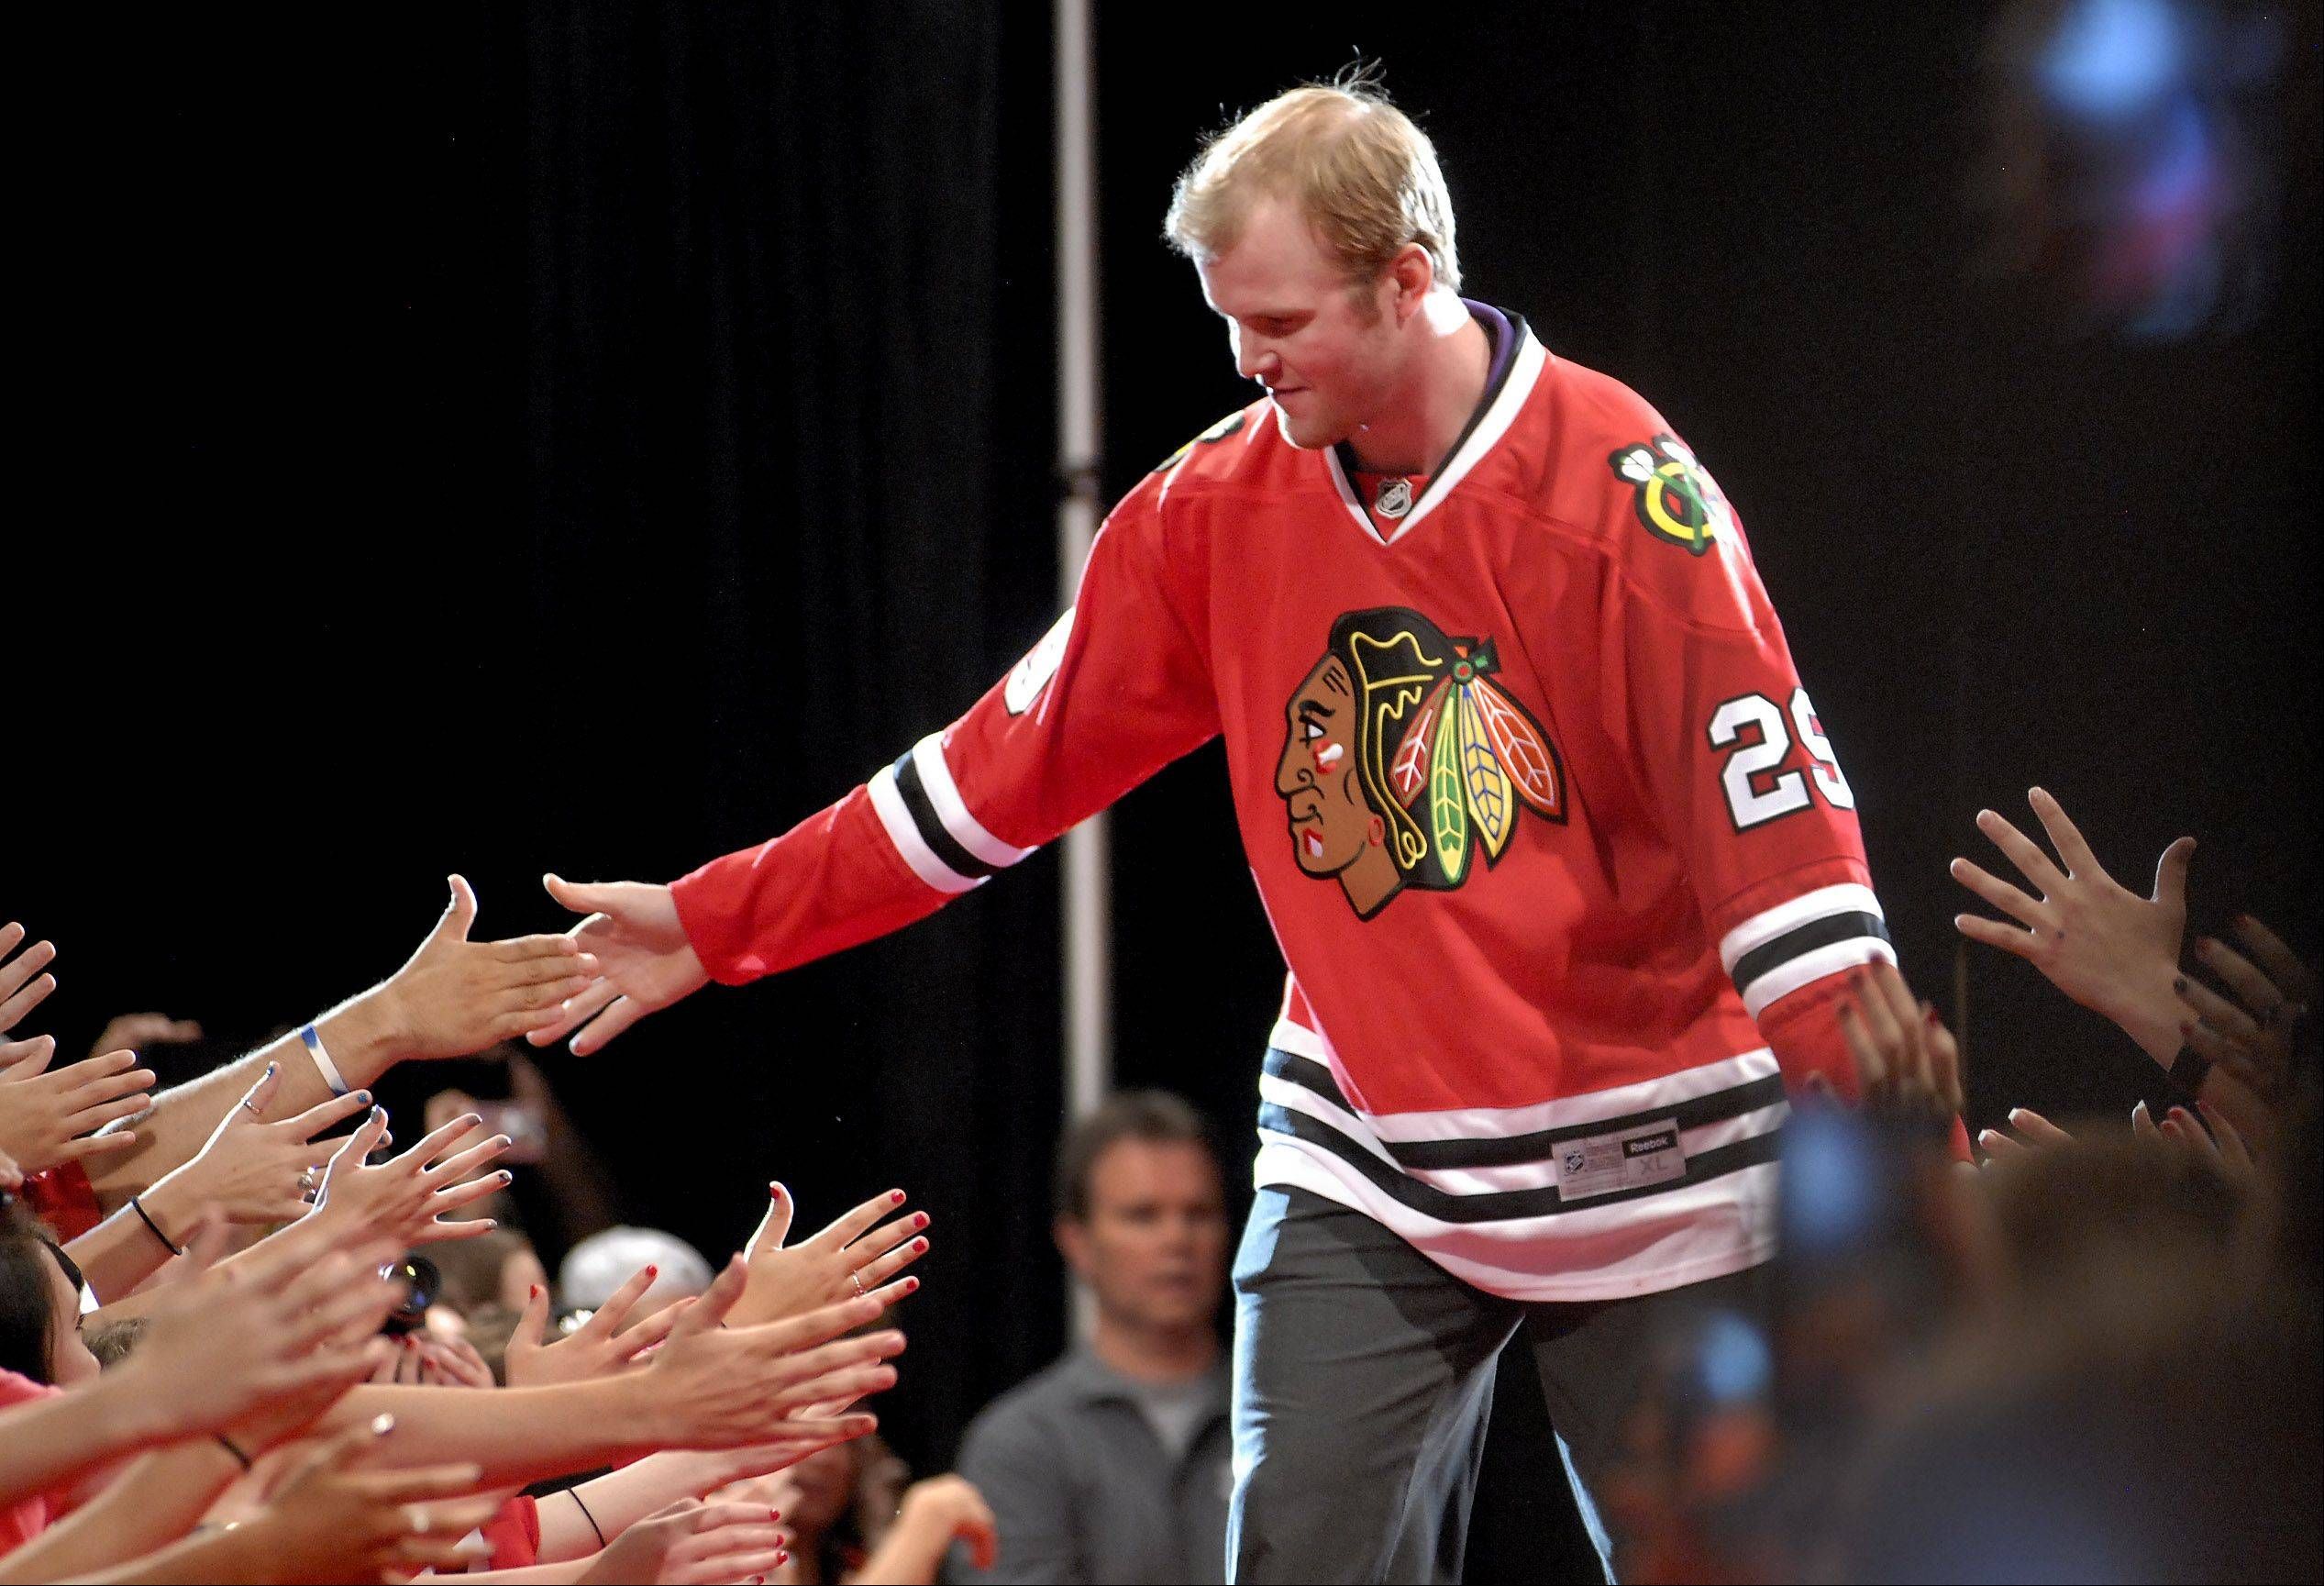 Bryan Bickell runs the gauntlet of fans while being introduced.